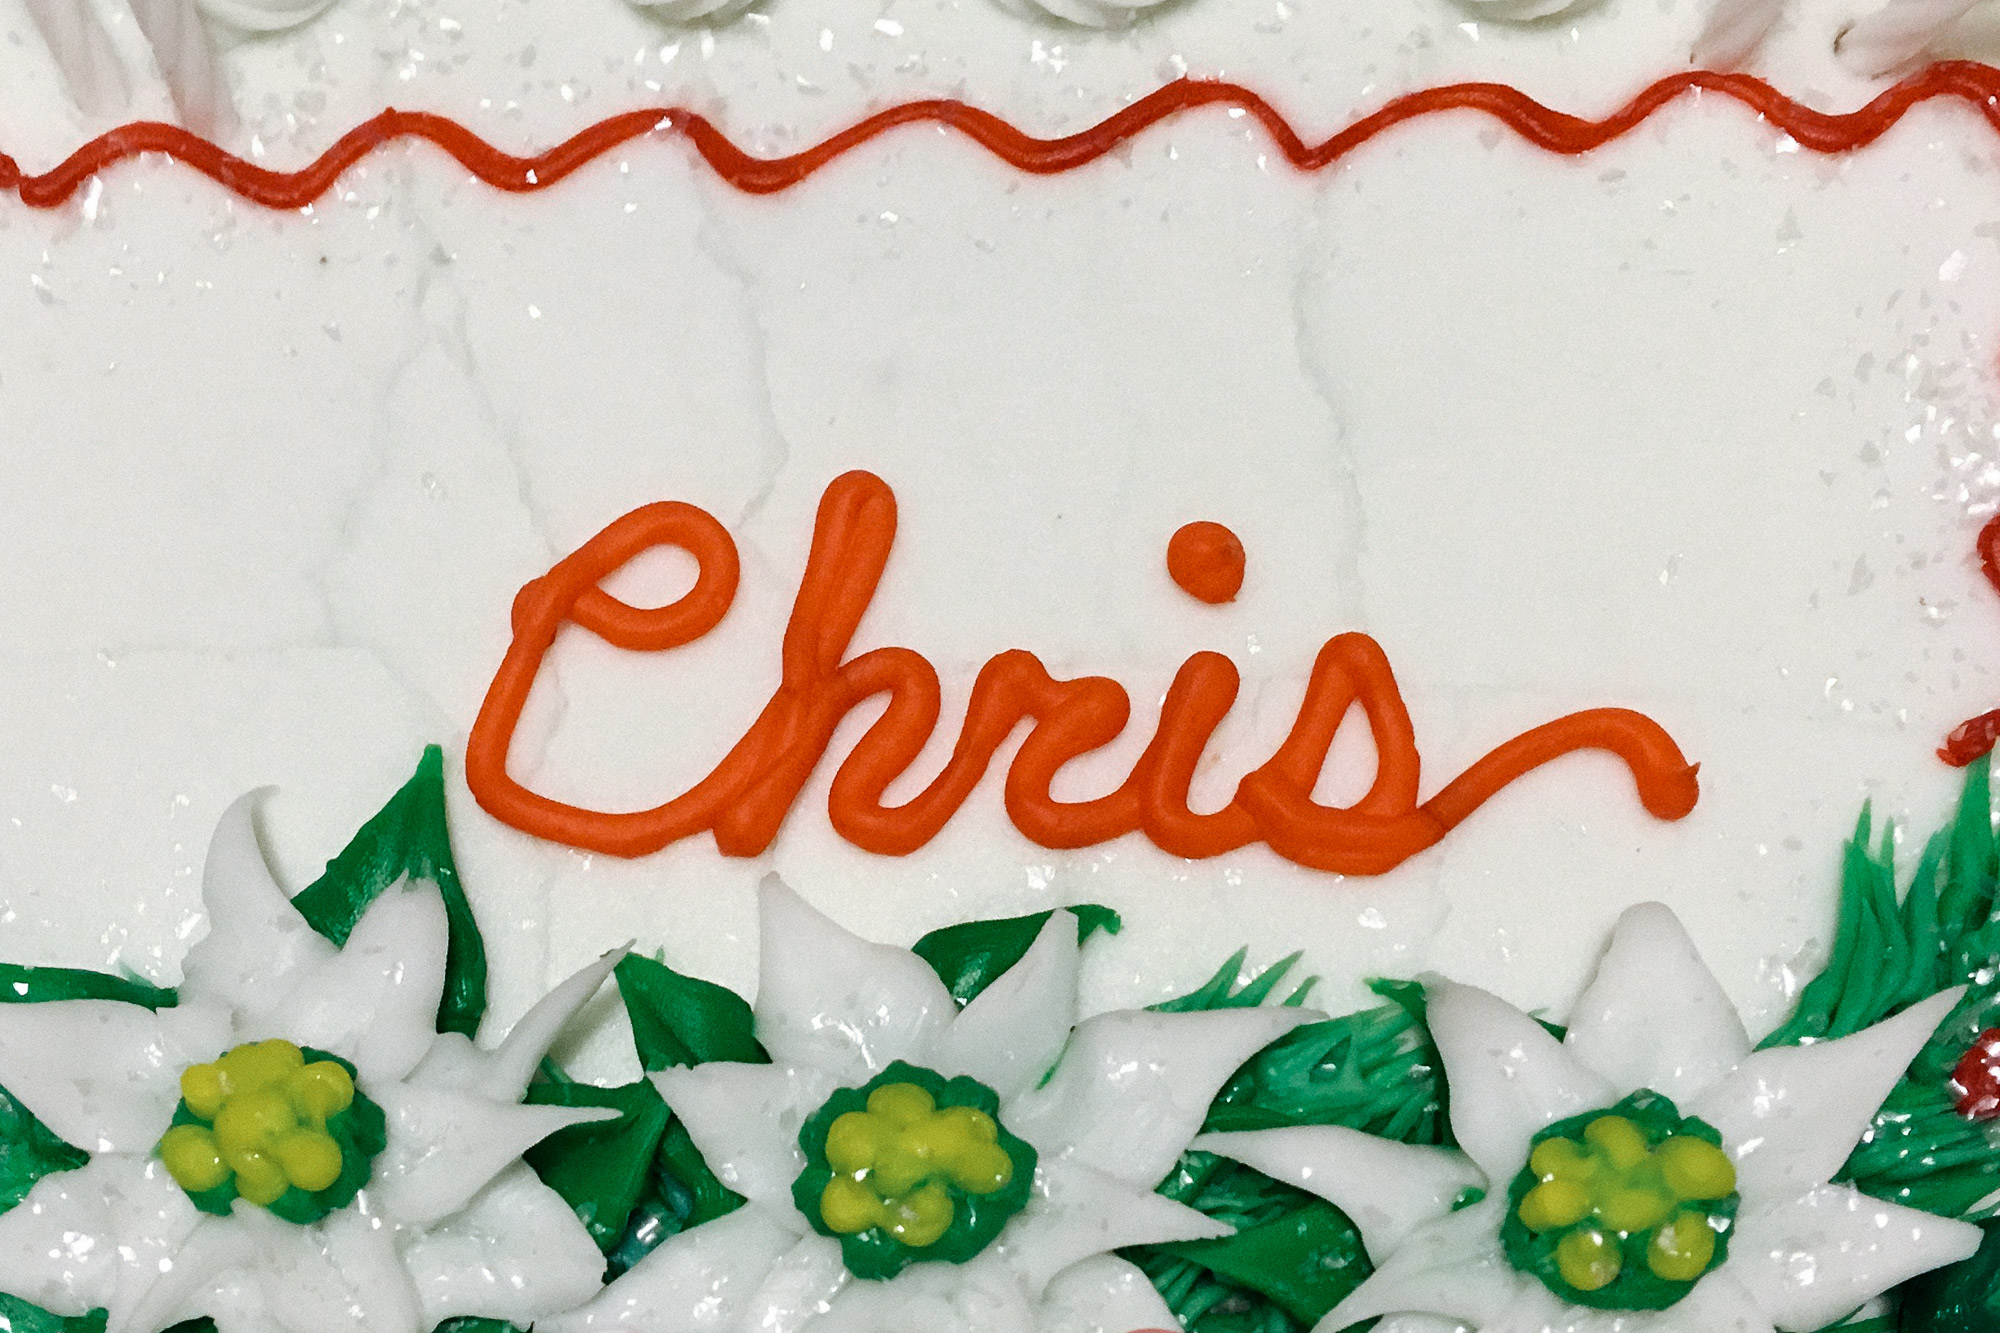 Chris in icing on a cake